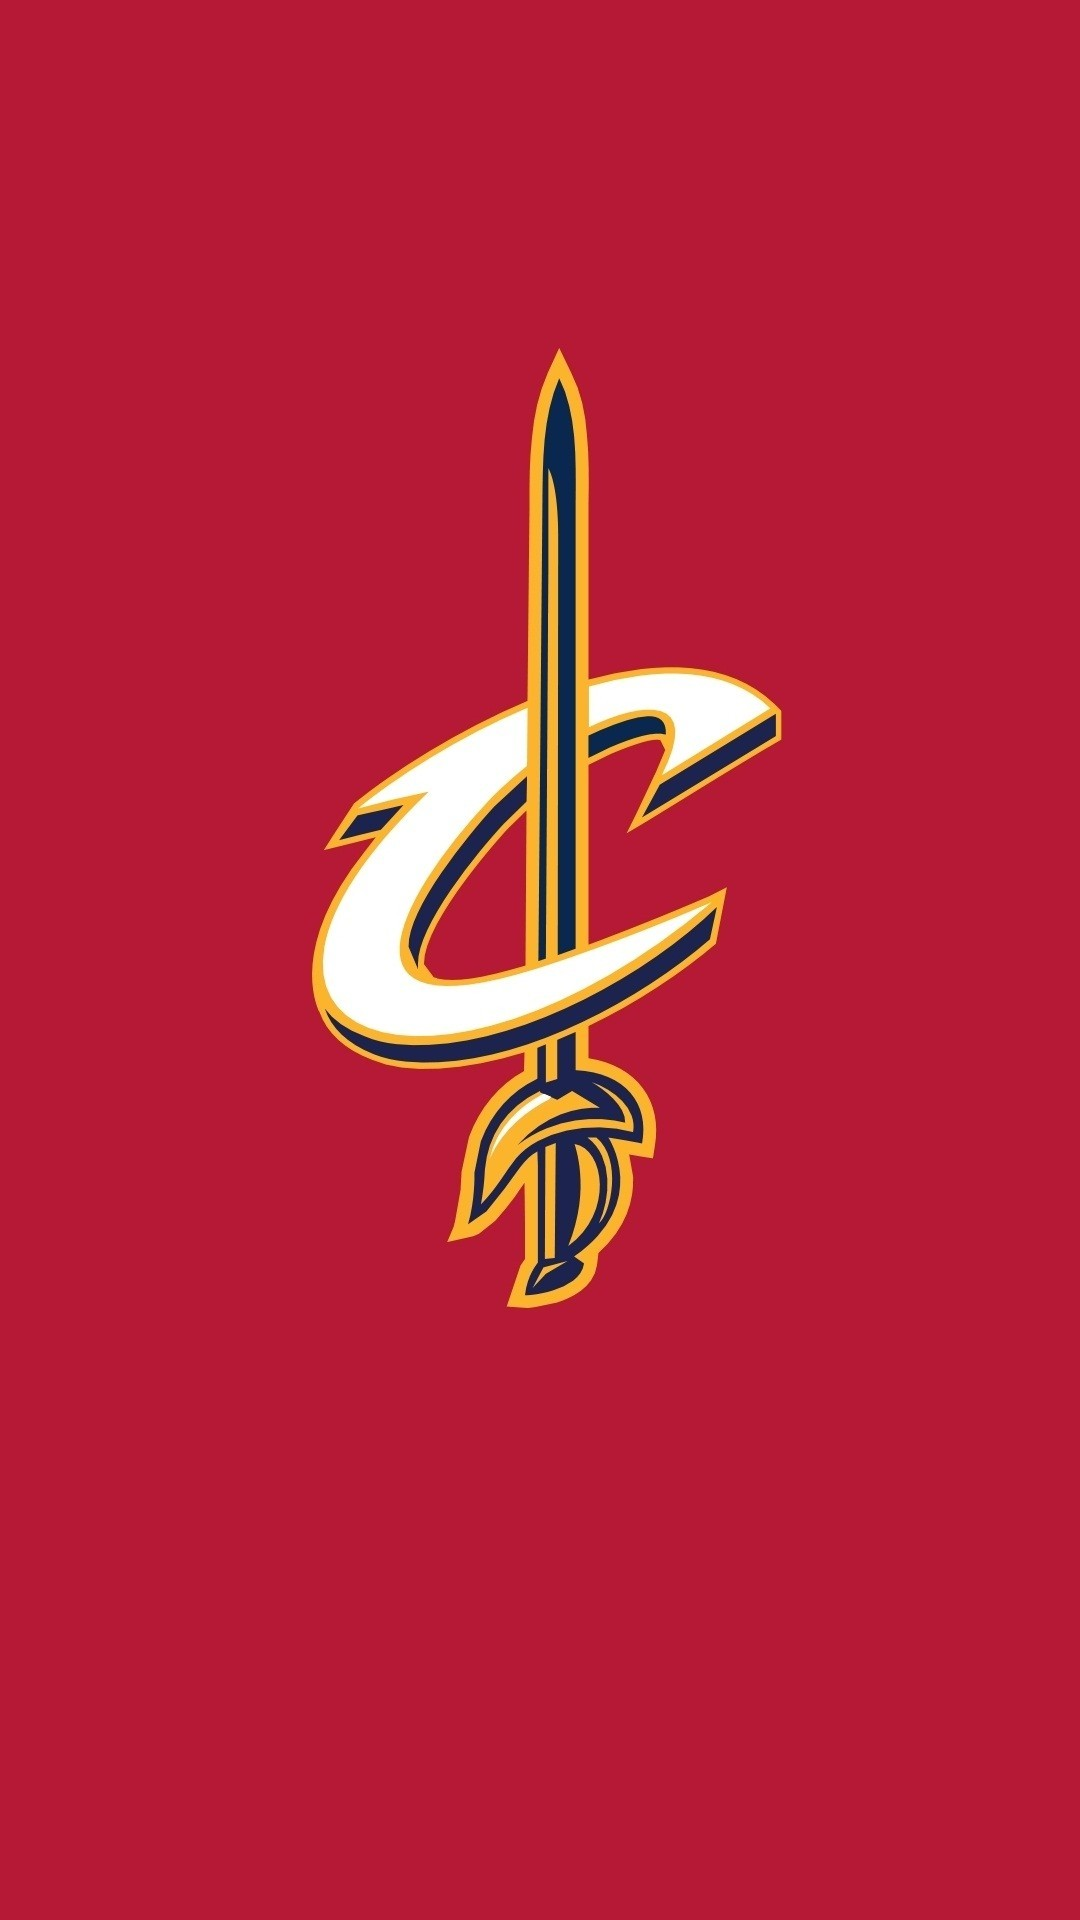 Cavaliers logo wallpapers 80 images - Cleveland cavaliers wallpaper ...